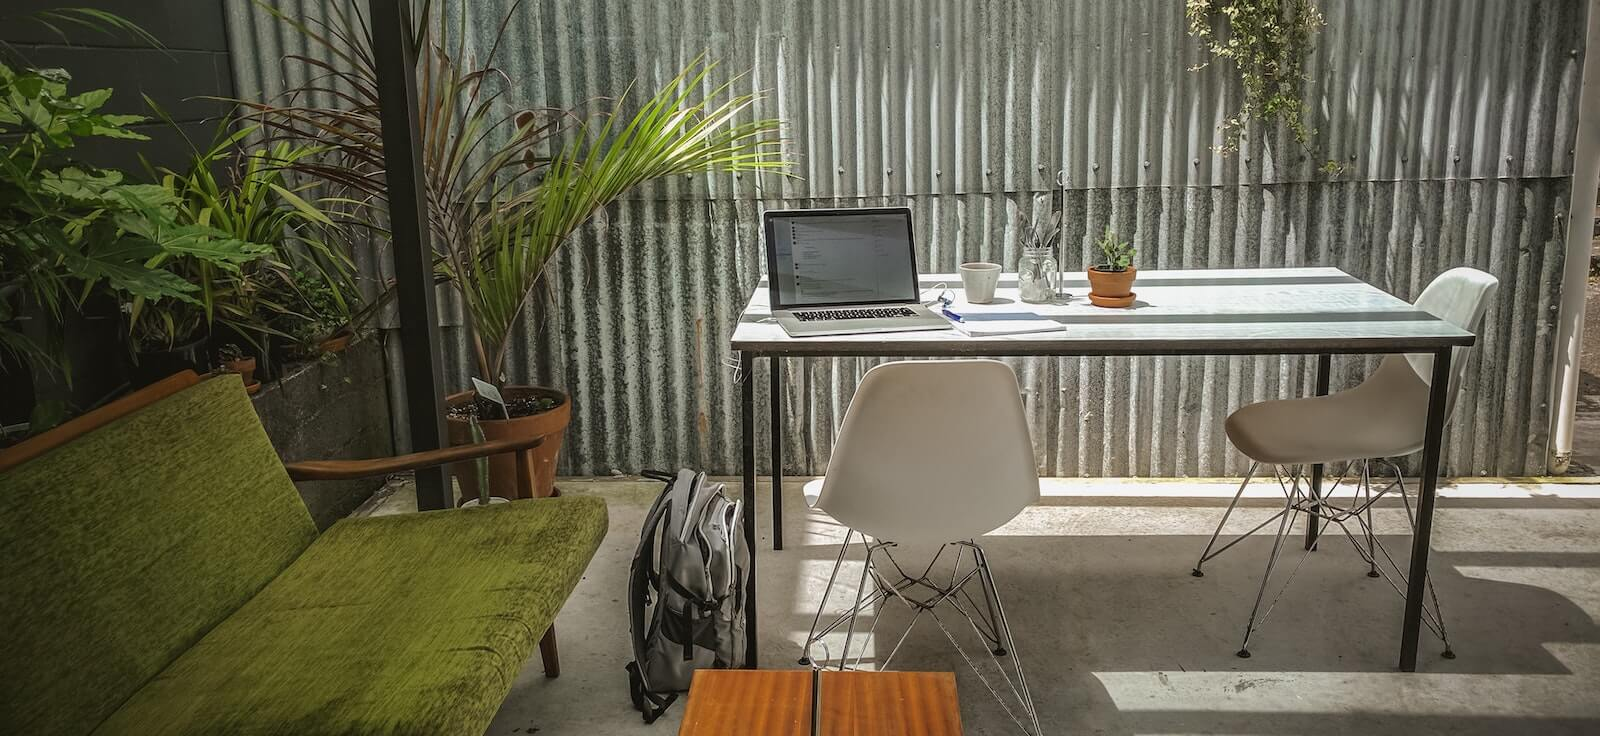 Modern office interior design using texture